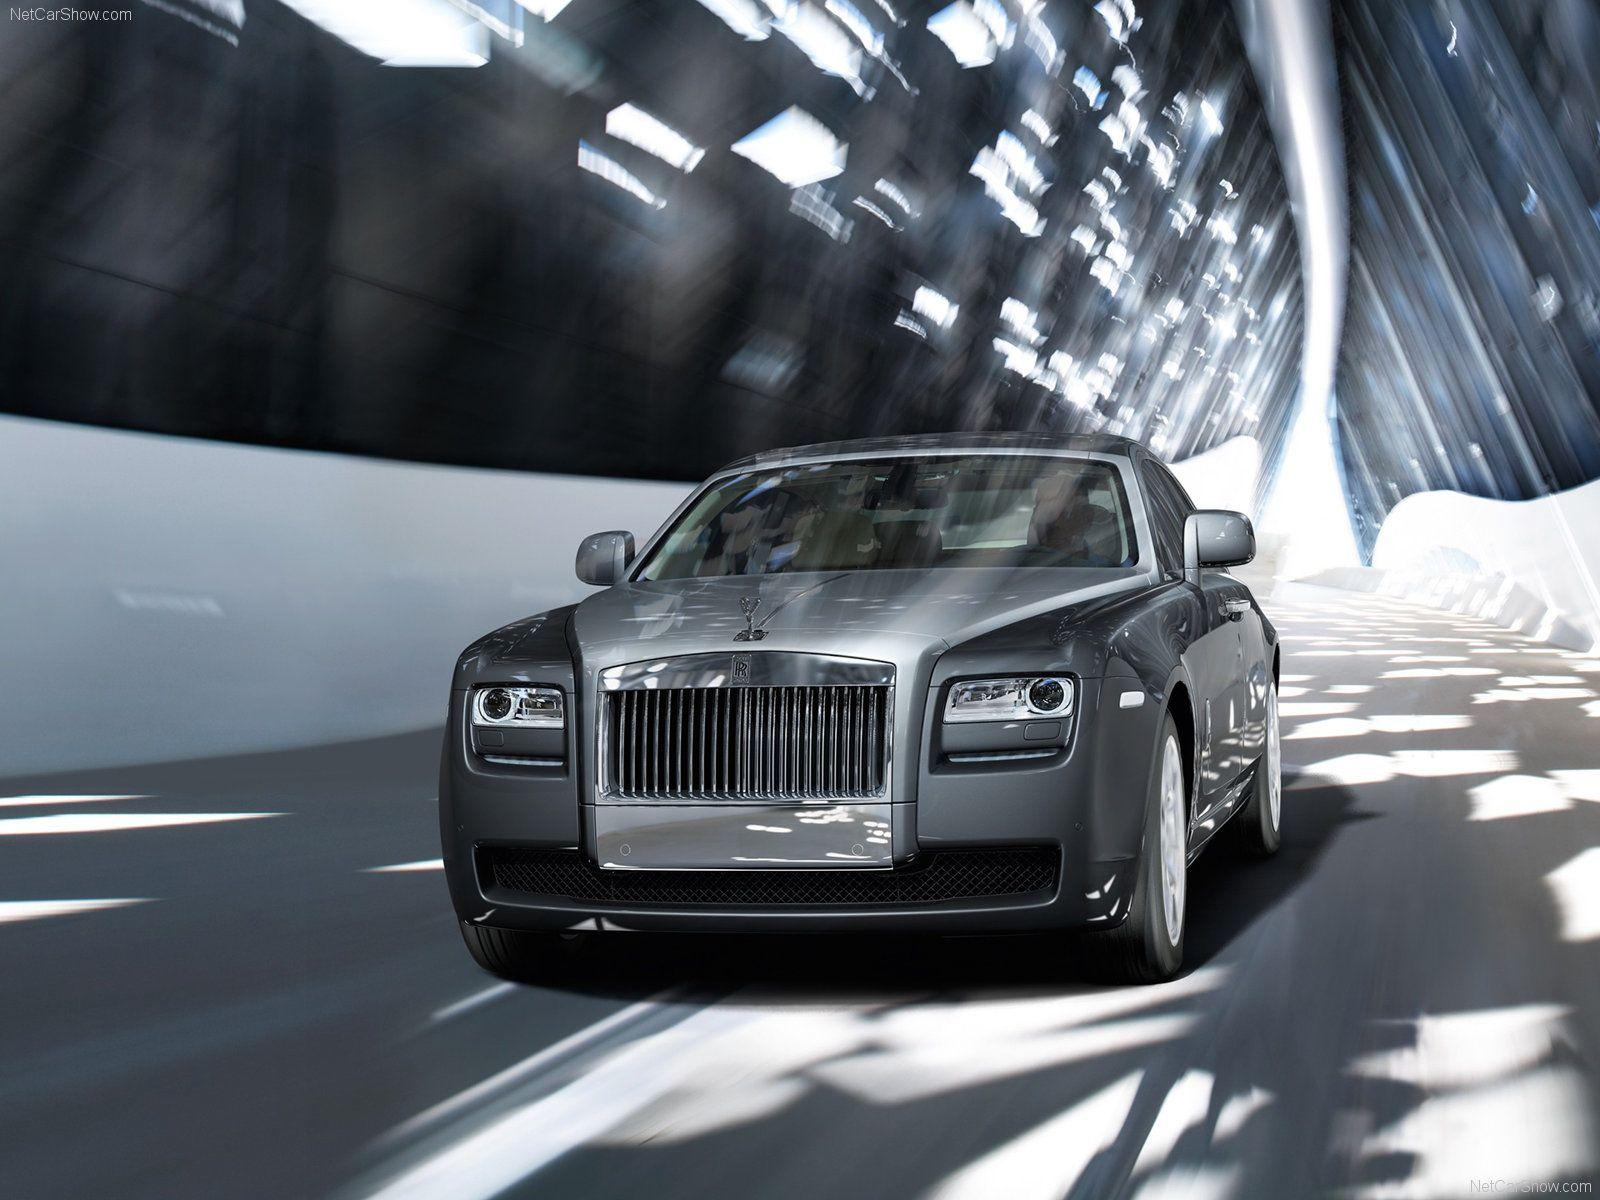 Rolls Royce HD Wallpapers Backgrounds Wallpaper | Разное ...